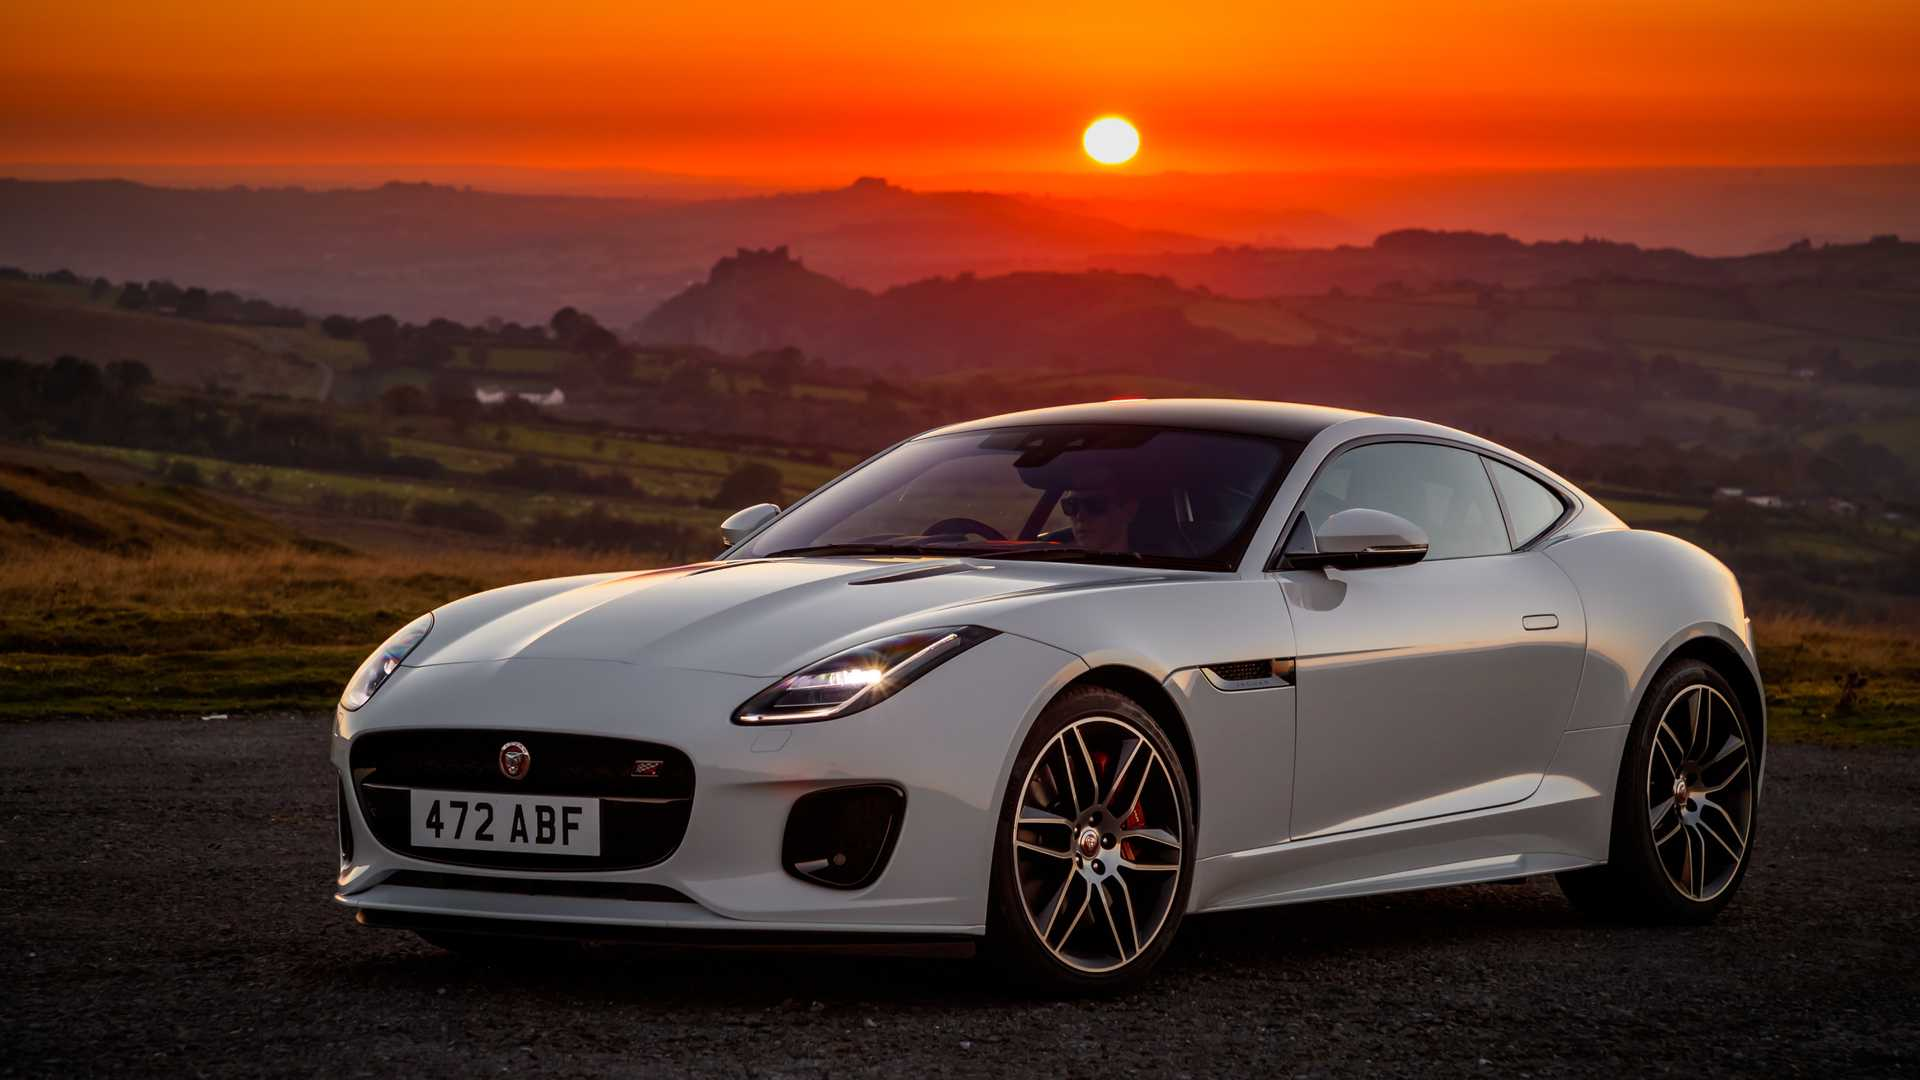 98 The 2020 Jaguar F Type Msrp Price Design And Review